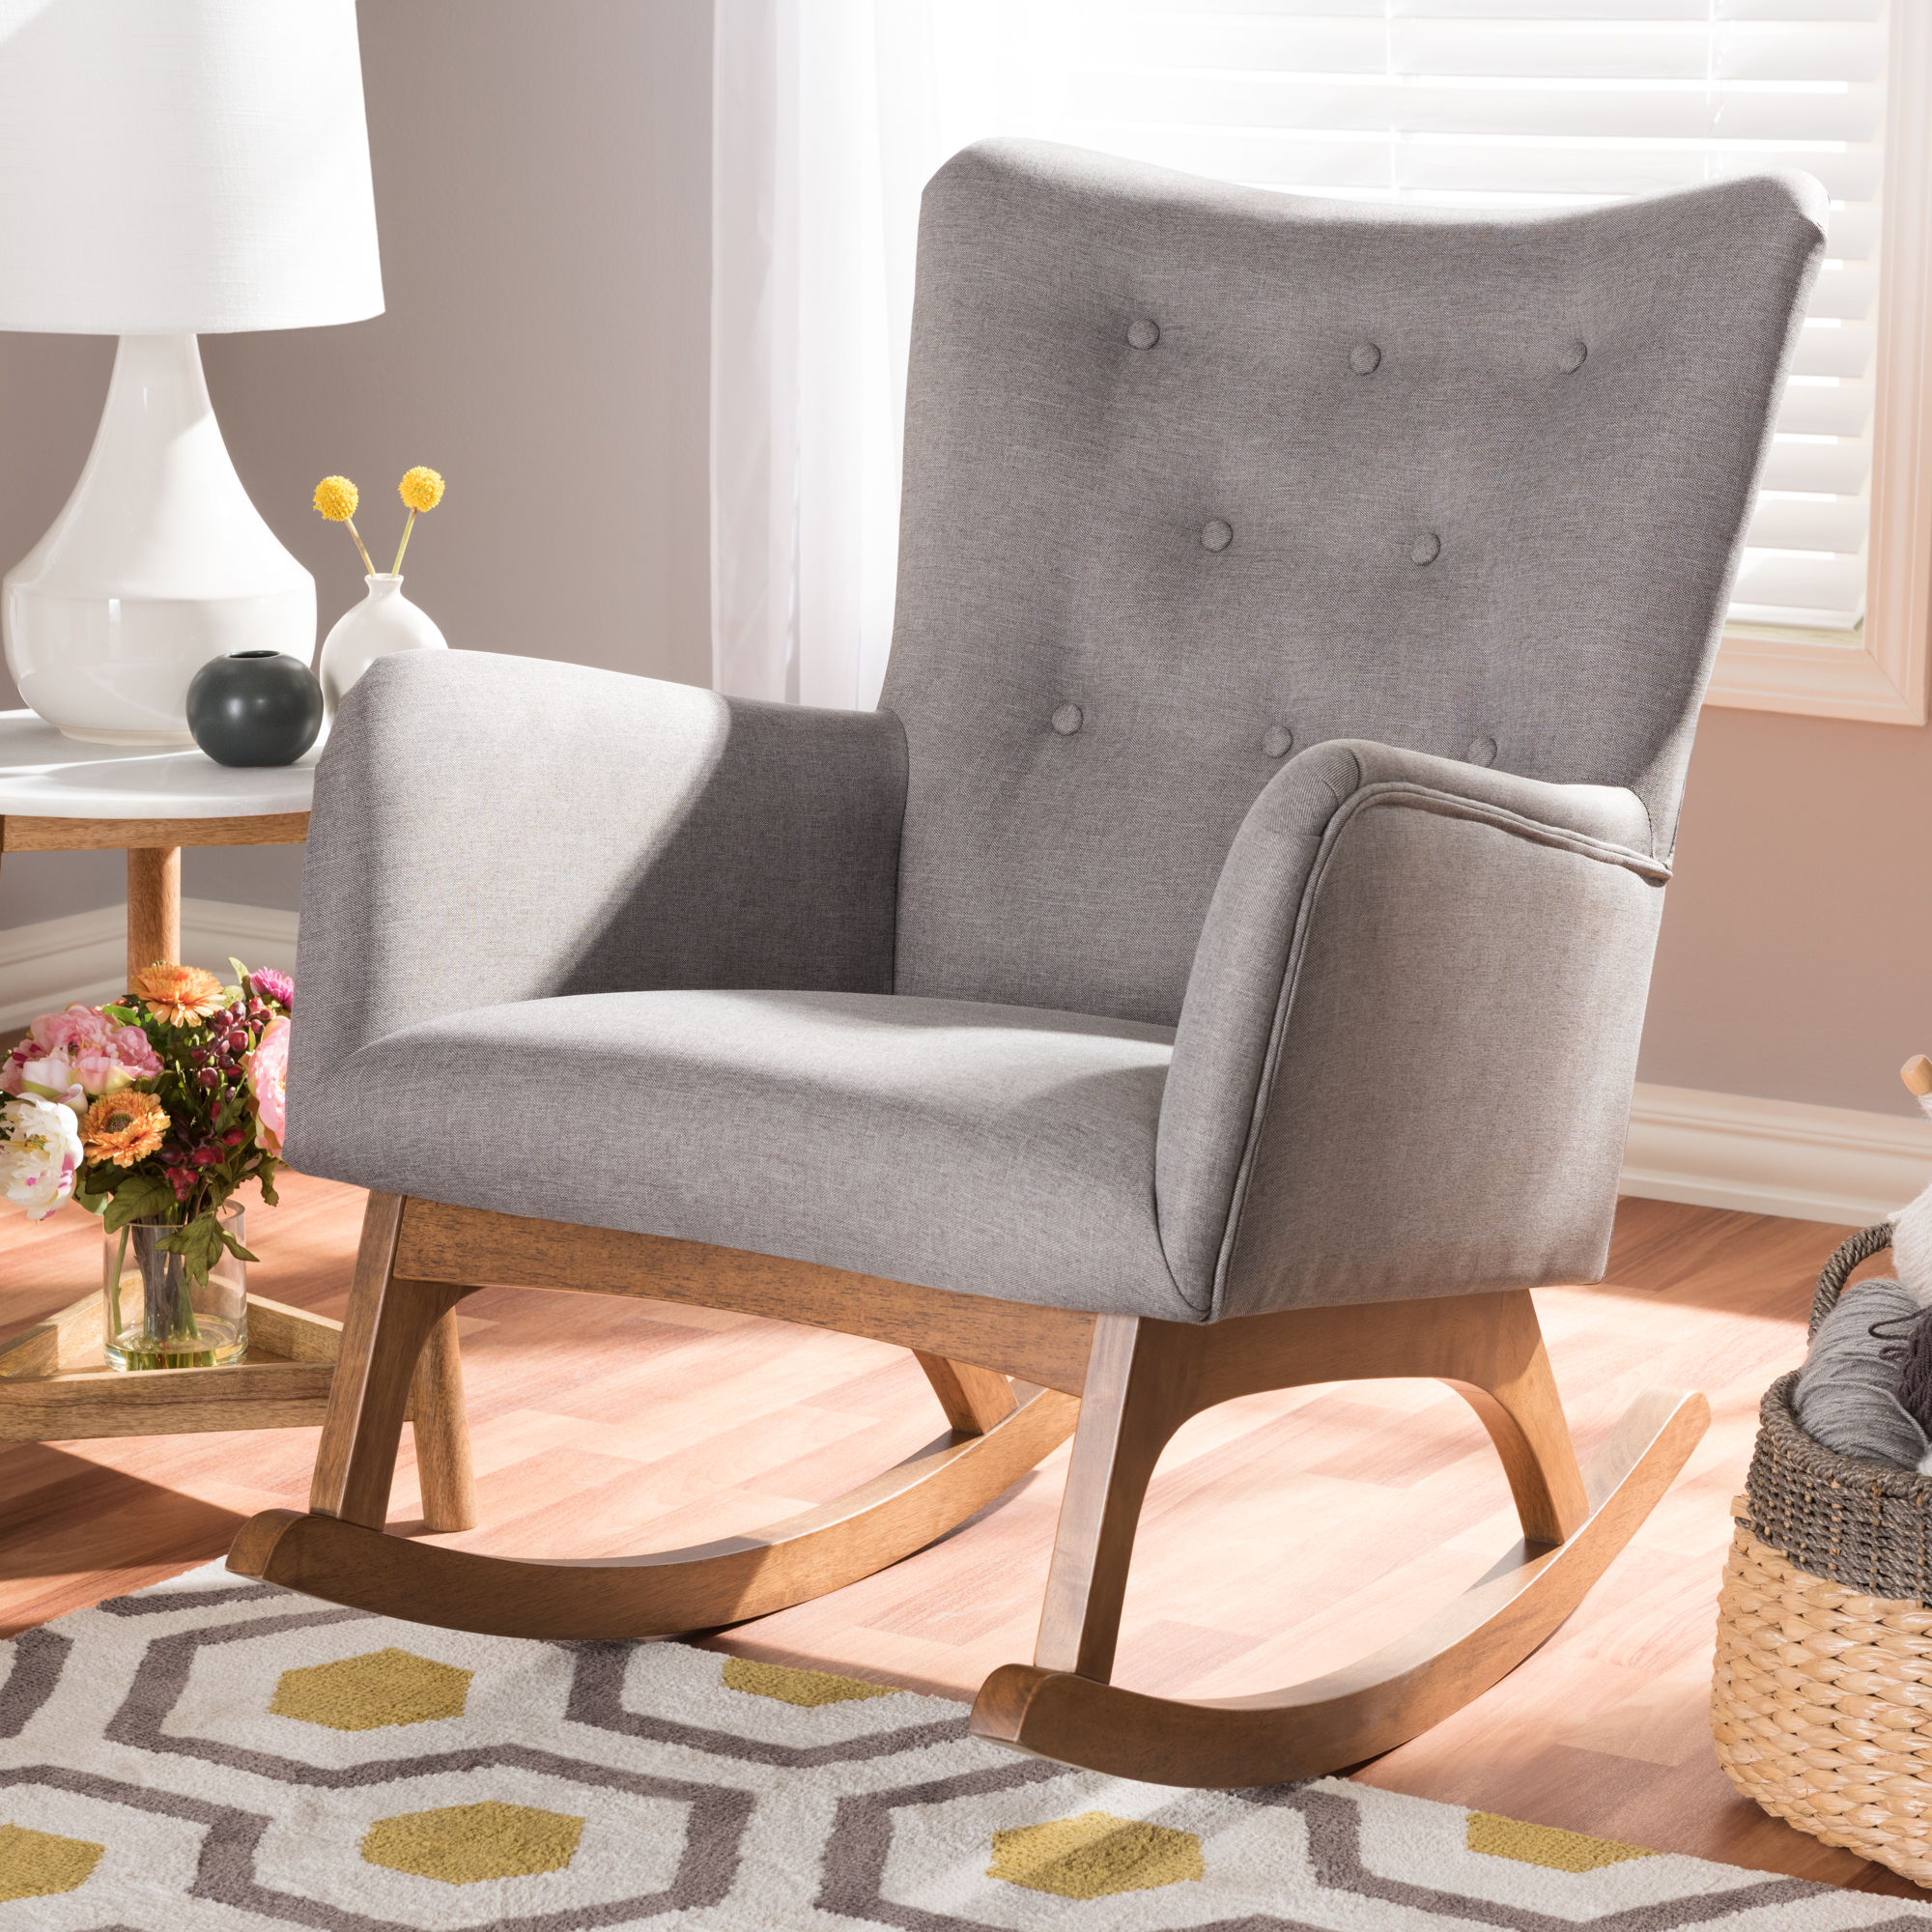 """Baxton Studio Waldmann Mid Century Modern Grey Fabric Upholstered Rocking Chair, Grey, 1, Mid Century, Medium Wood, Fabric """"polyester 100%""""/rubber With Regard To Beige Fabric And Cherry Wood Rocking Chairs (View 16 of 20)"""